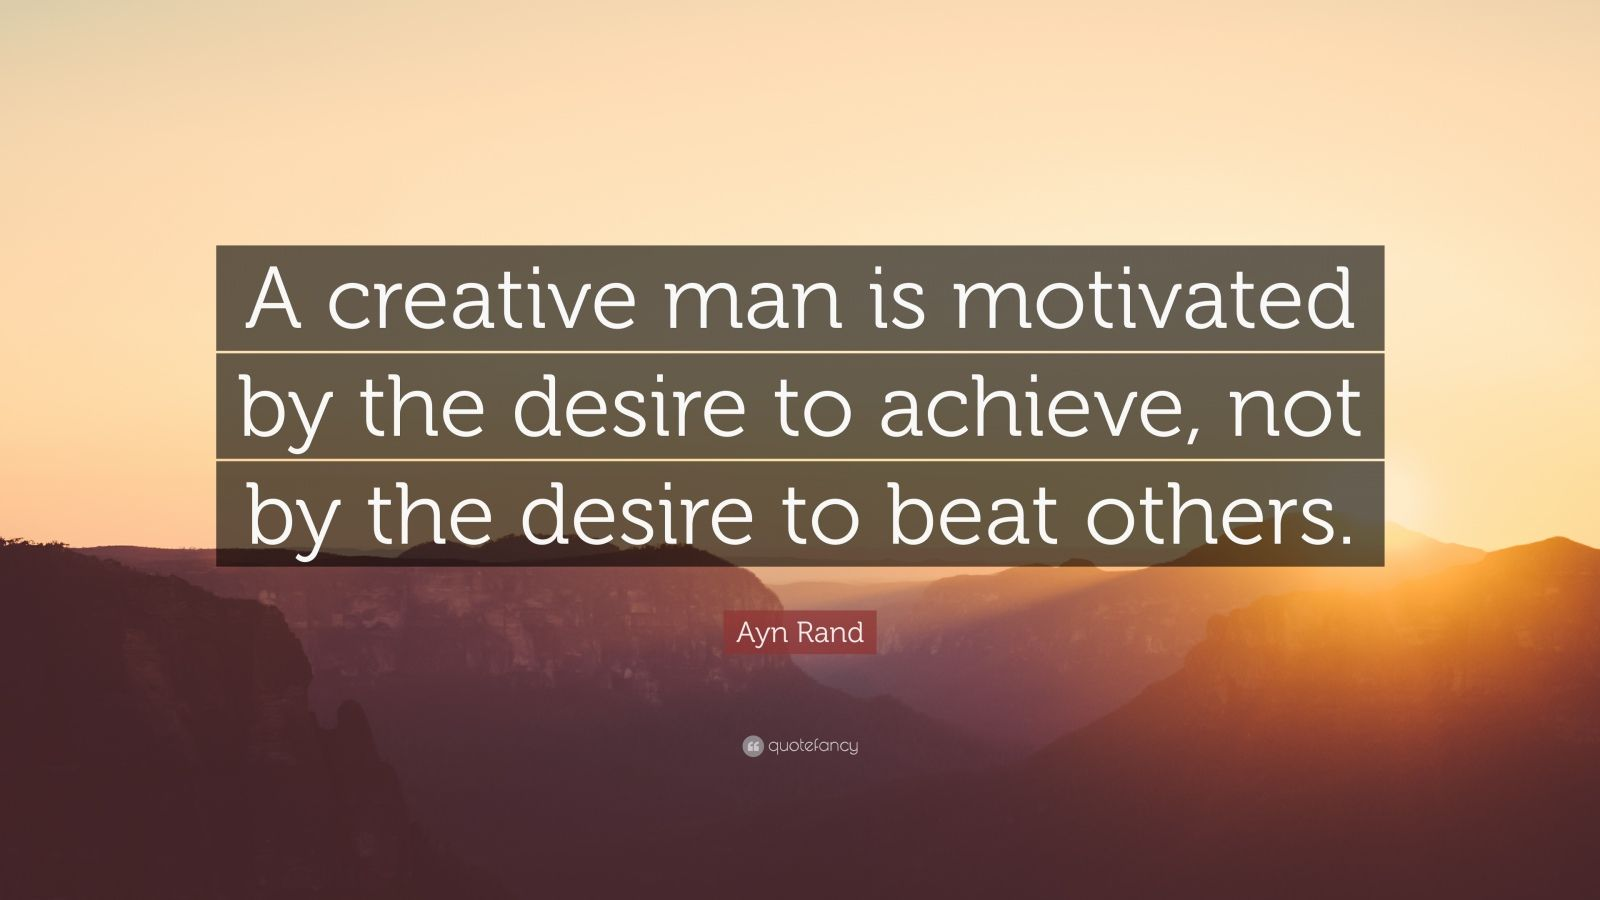 Mother Teresa Quotes Wallpapers Ayn Rand Quote A Creative Man Is Motivated By The Desire